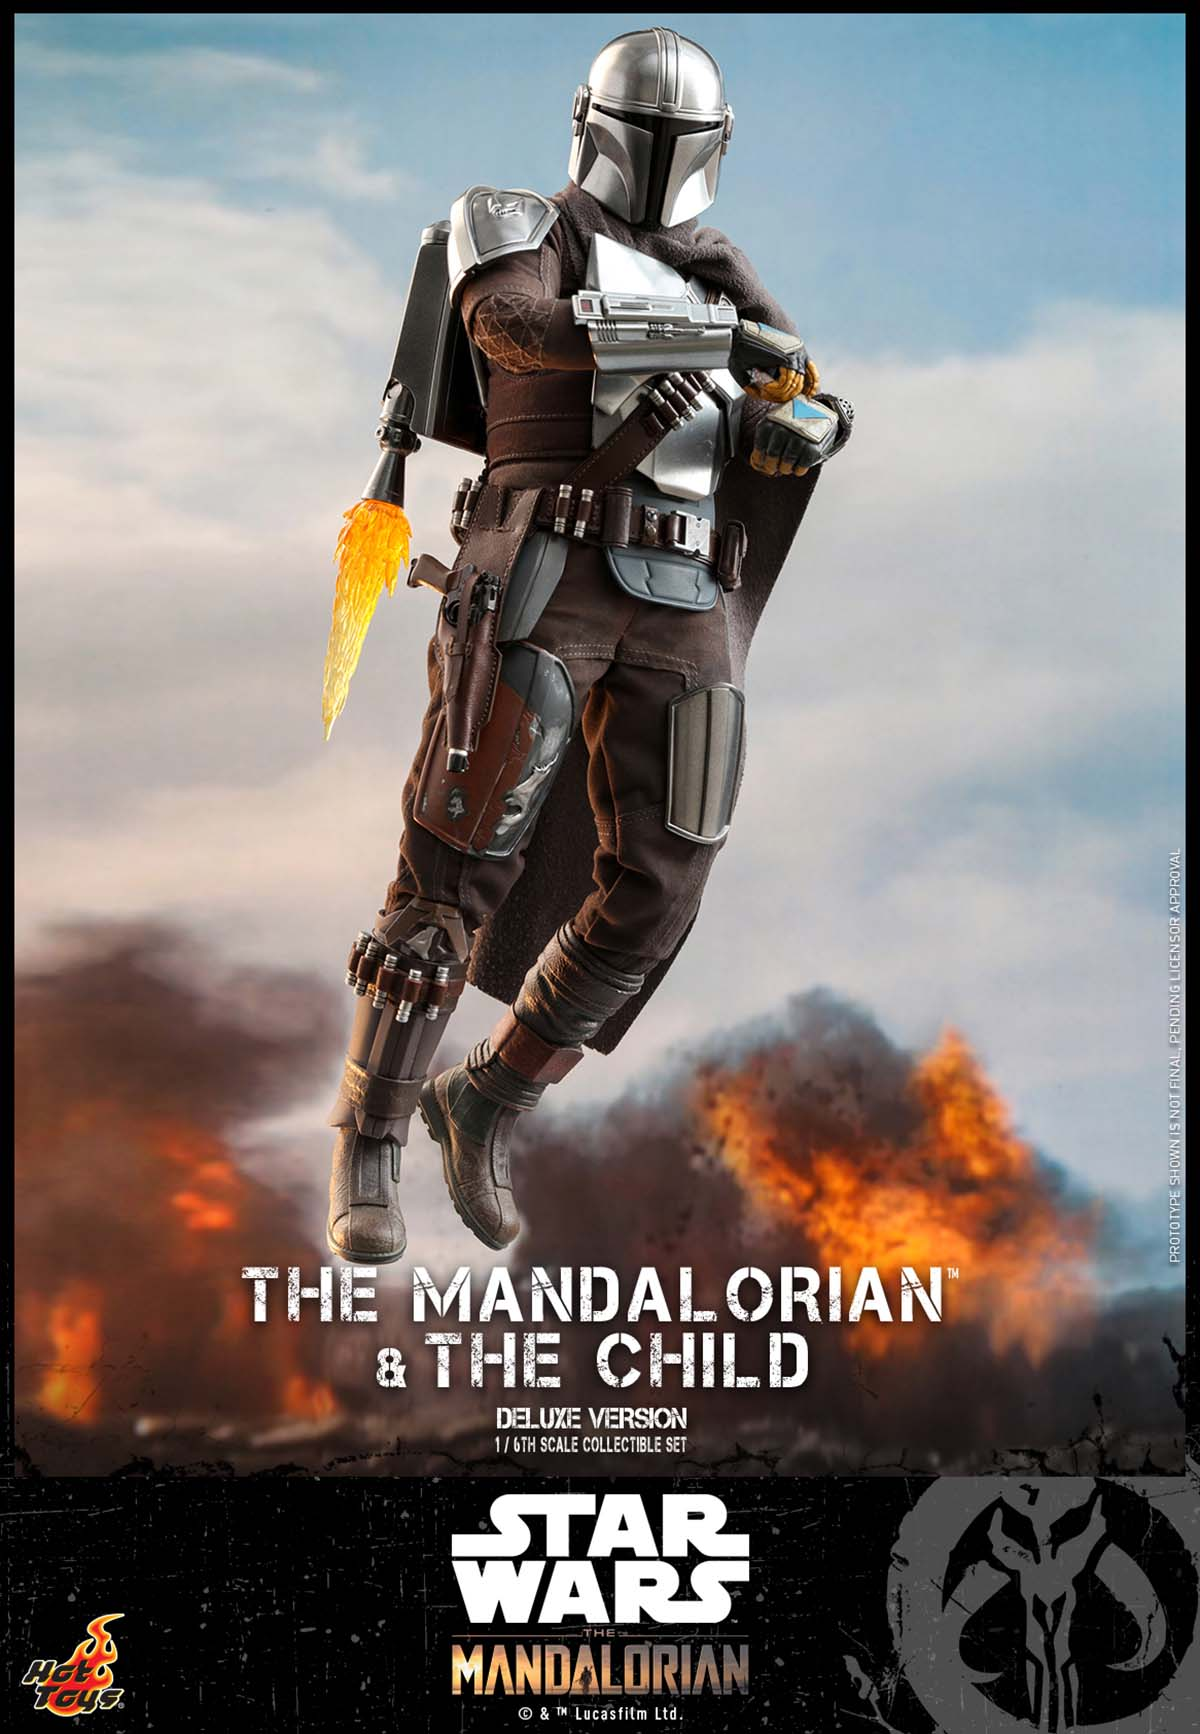 hot-toys-stm-mandalorian-and-child-collectible-set-deluxe_pr4